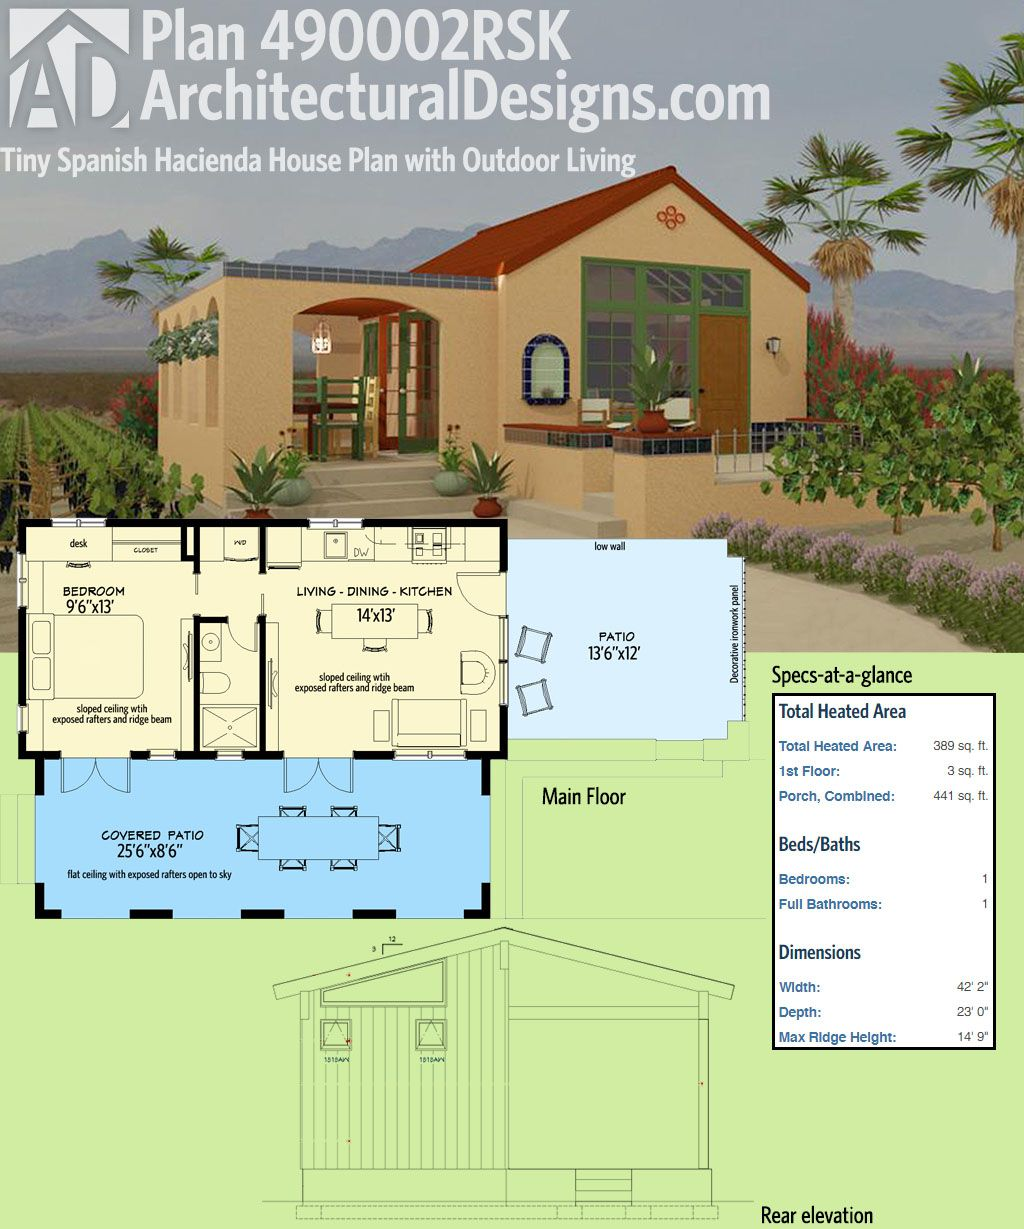 Architectural Designs Tiny House Plan 490002rsk Is Modeled After The Spanish Style Hacienda Mediterranean House Plans Cottage Style House Plans Diy House Plans